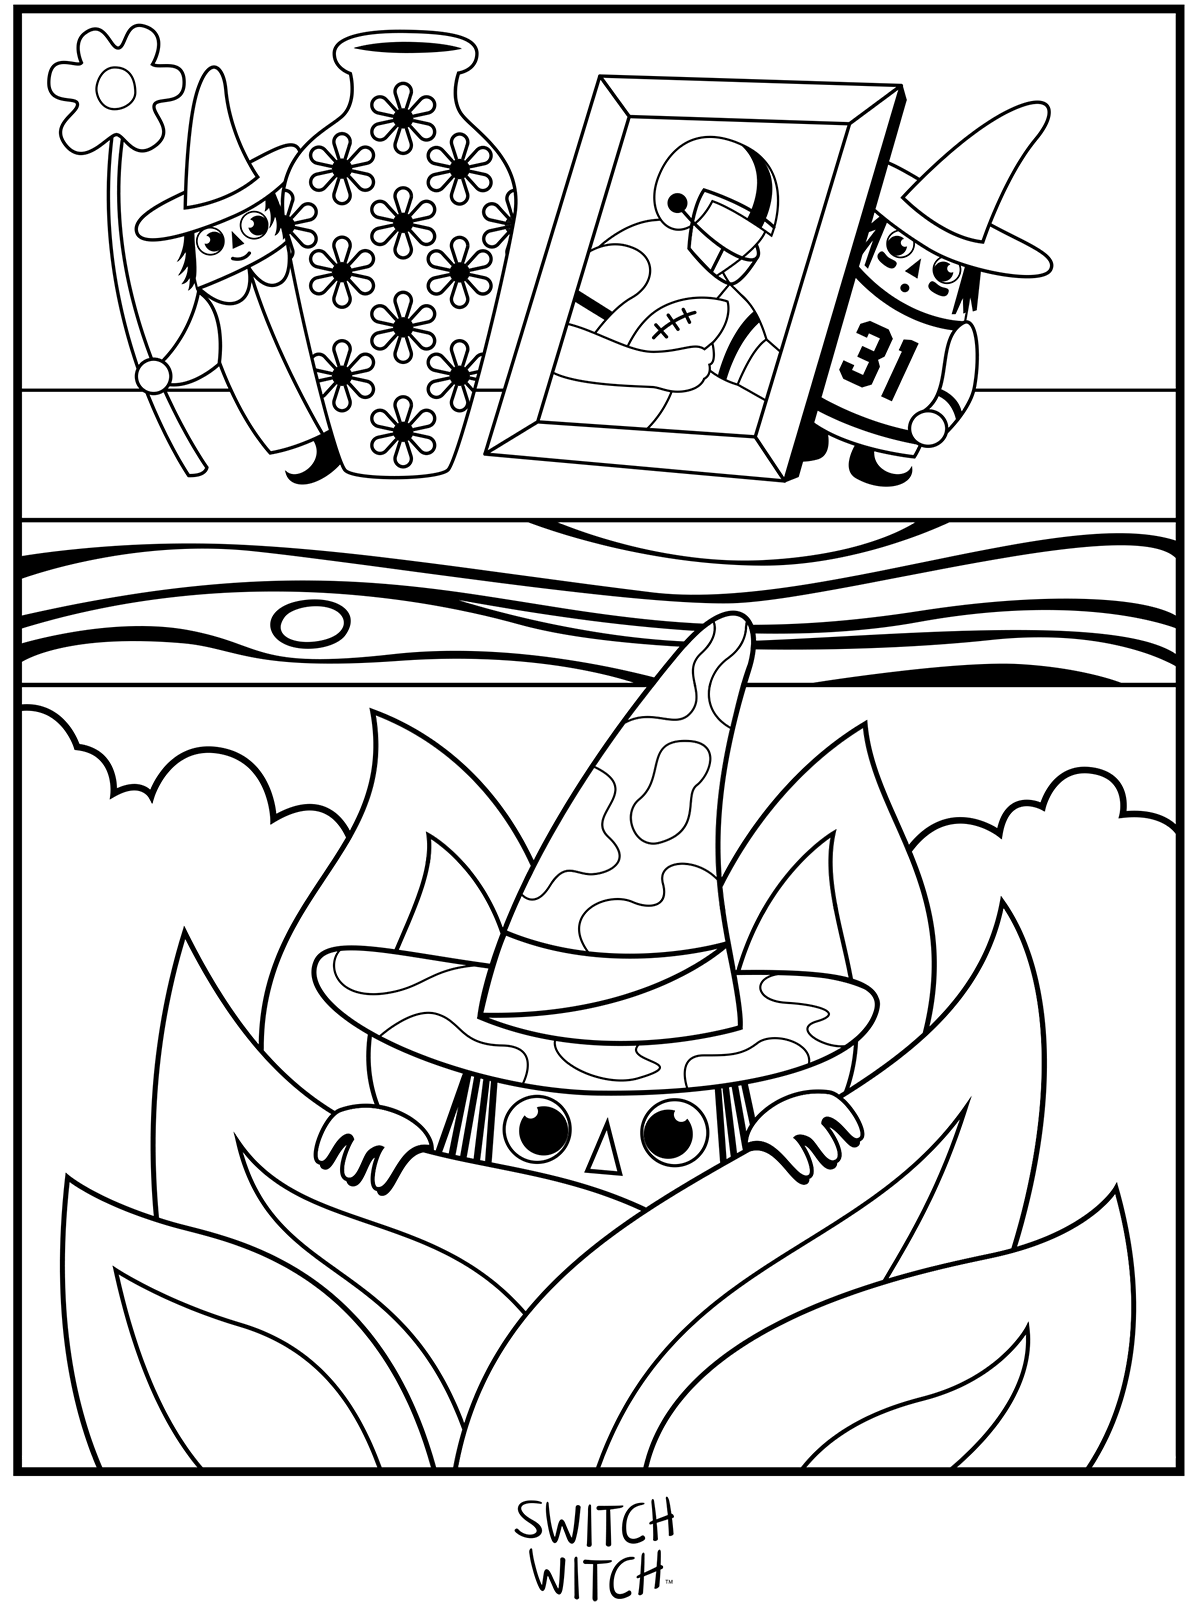 Switch-Witch-Coloring-Page-02-PNG.png